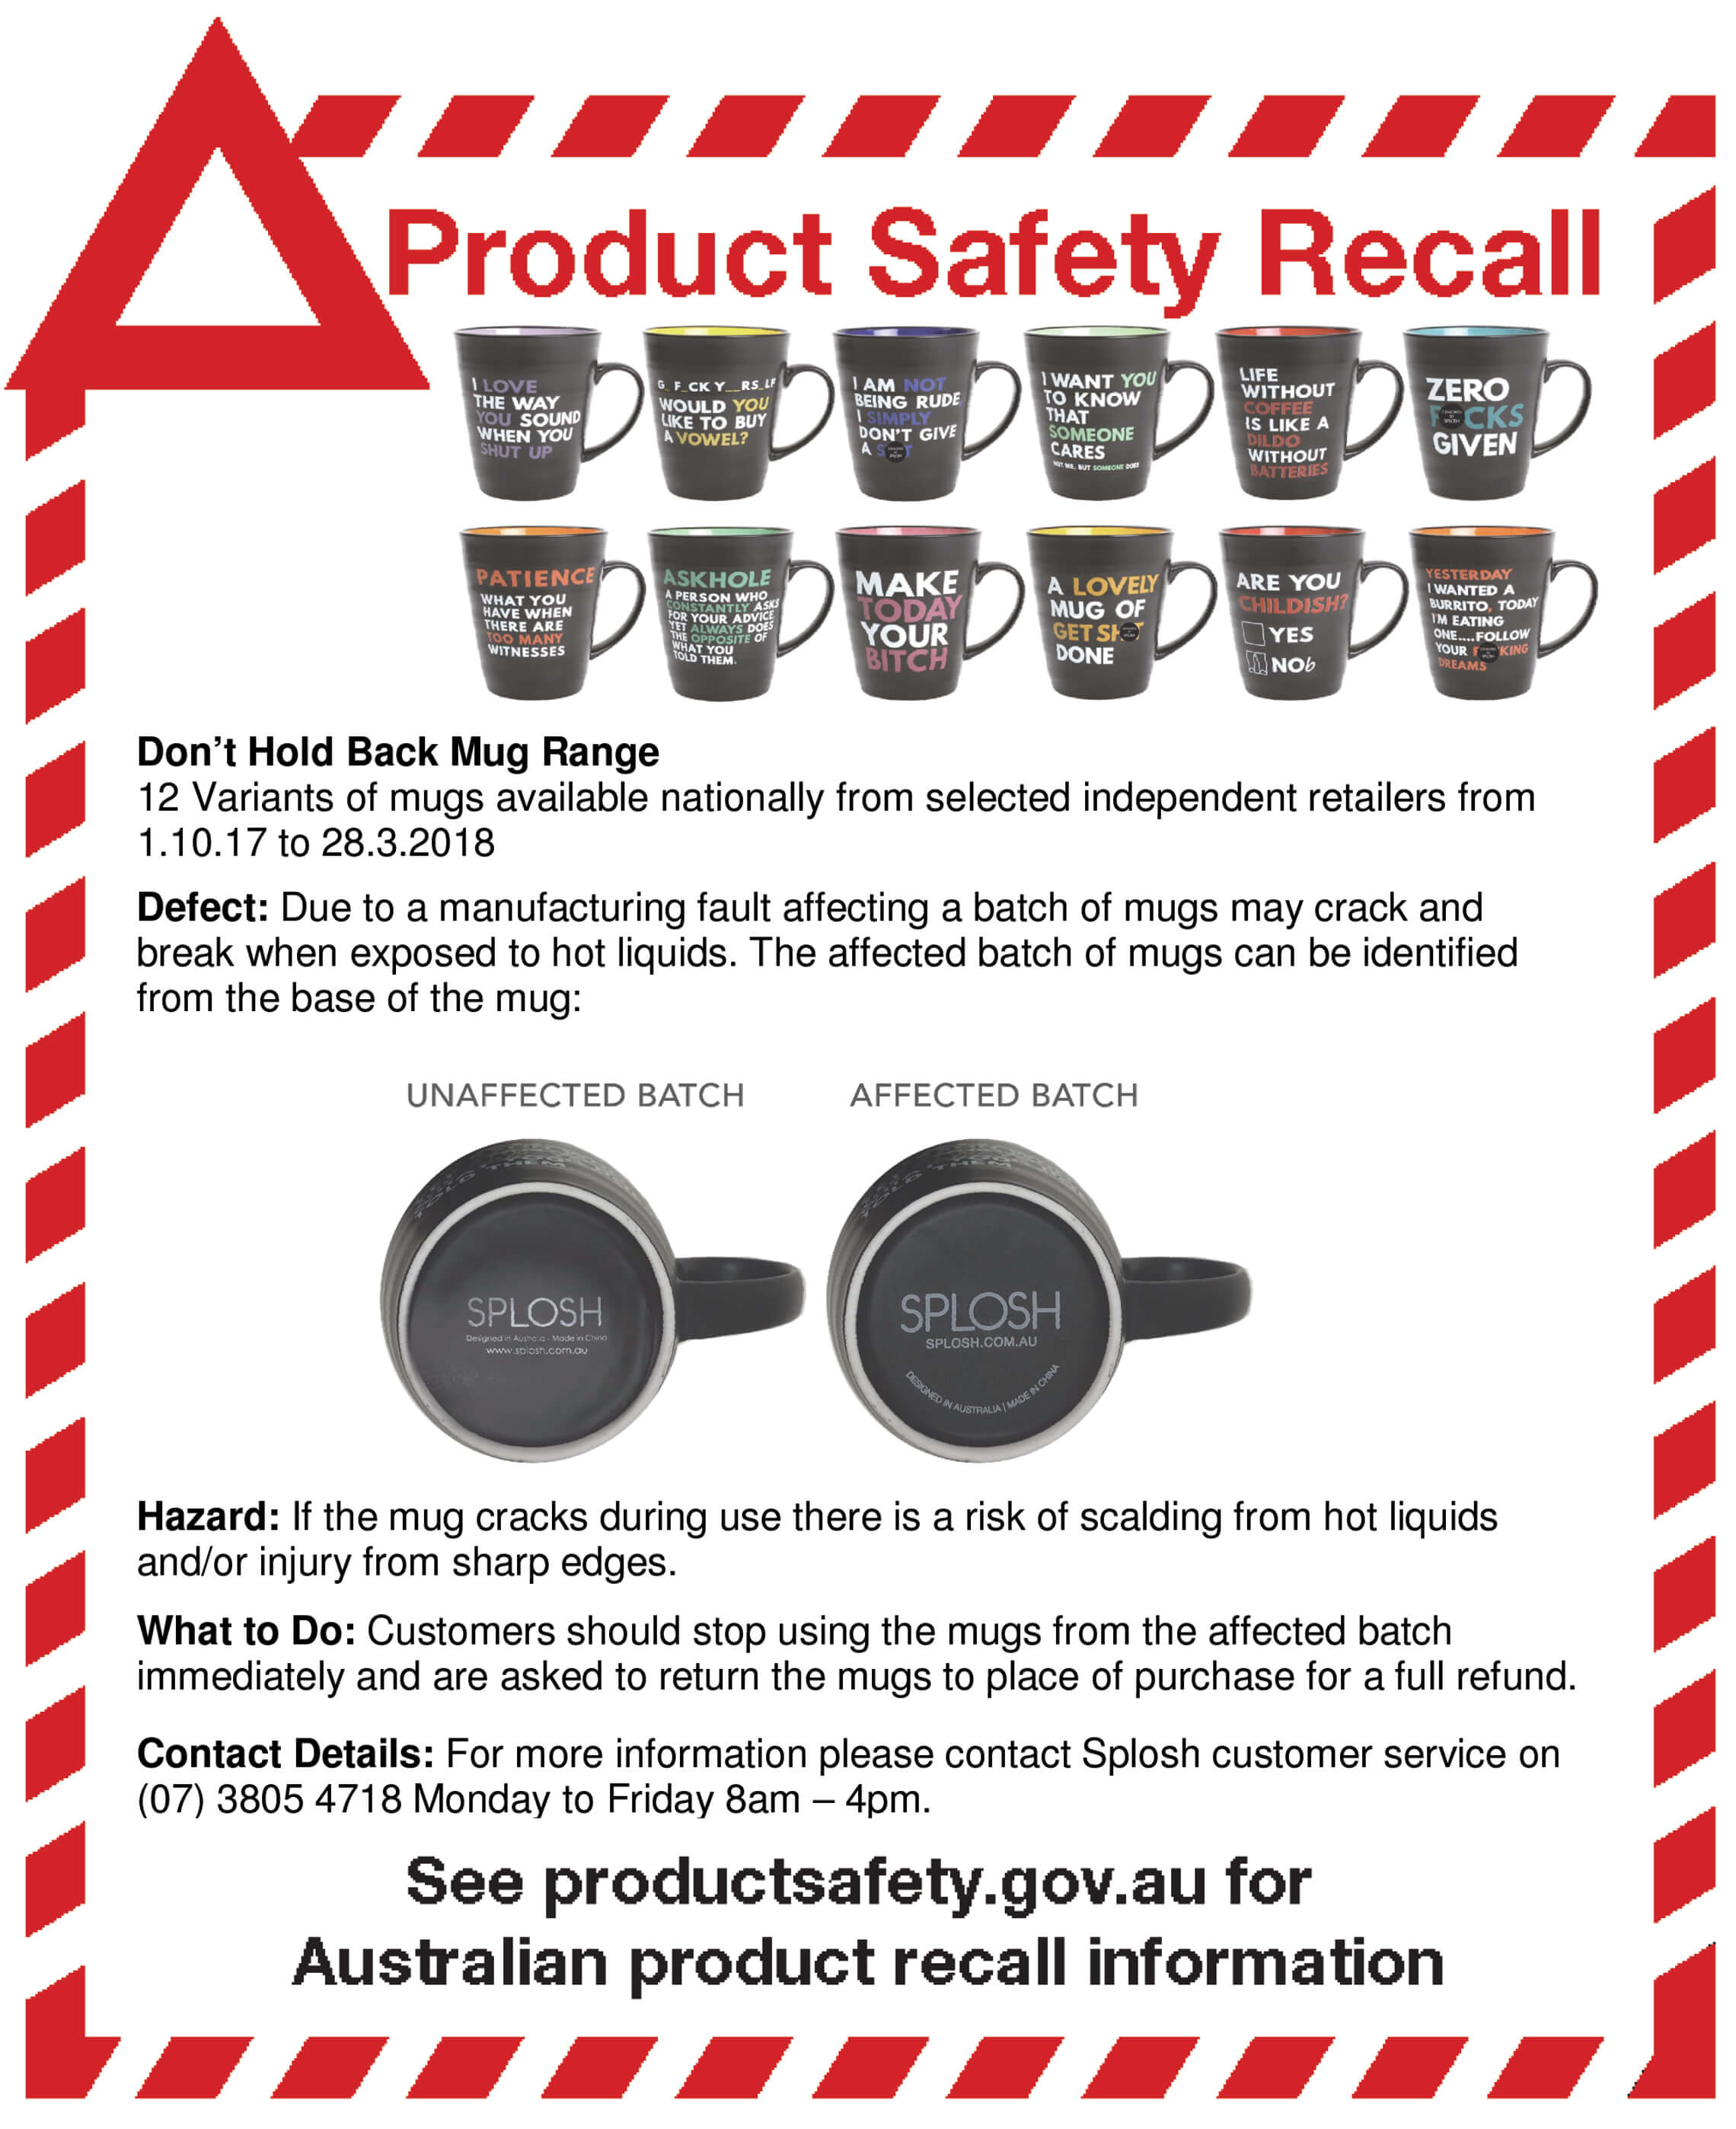 Don't Hold Back Mug Recall